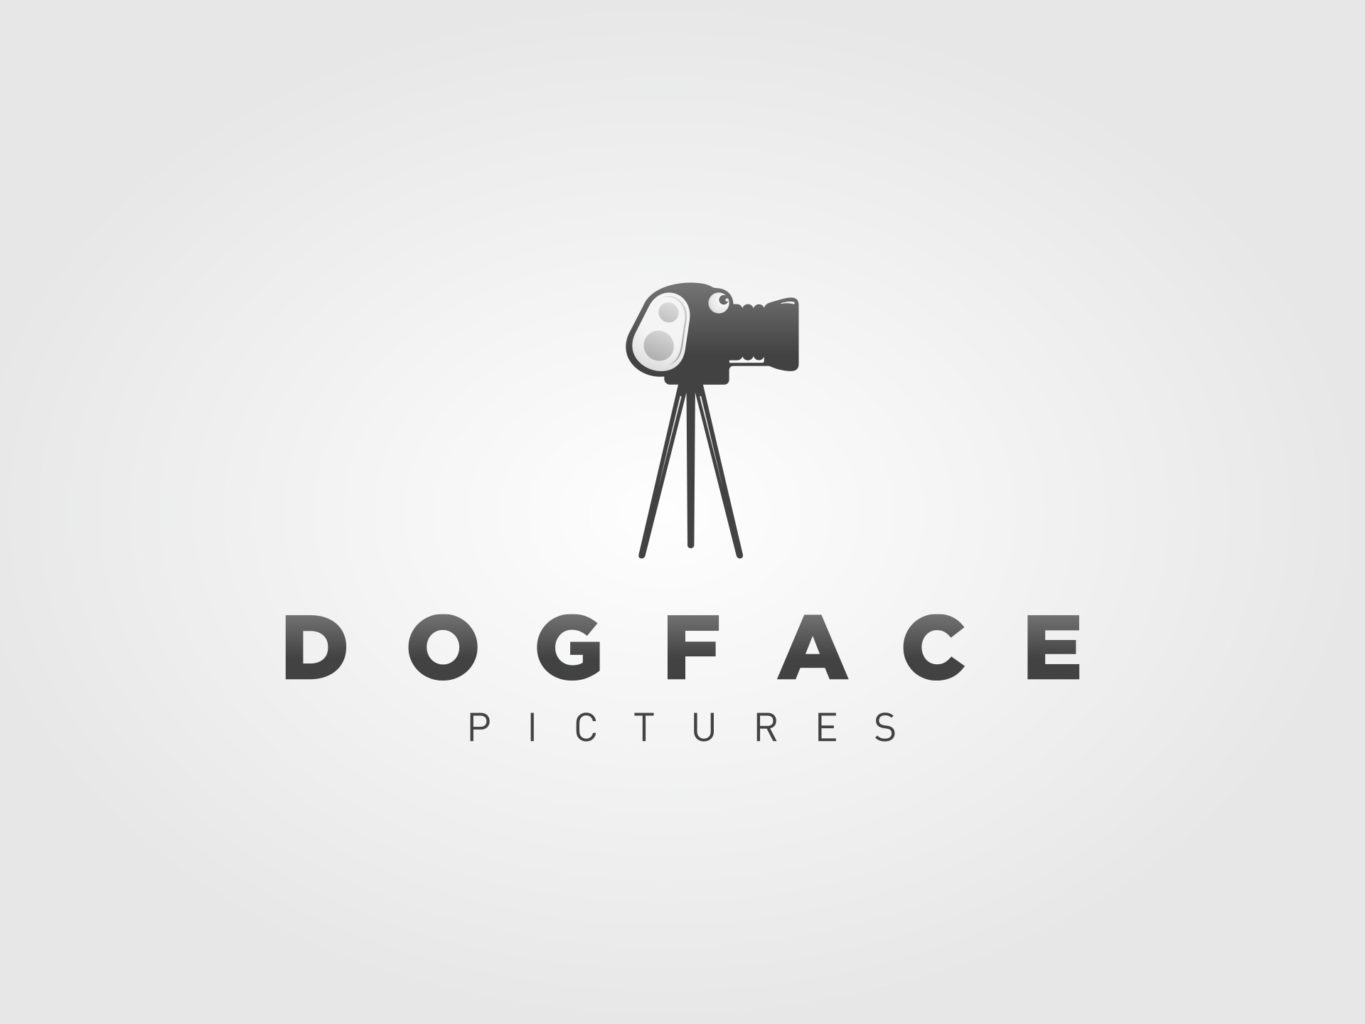 dogface pictures logo by fiftyeggz